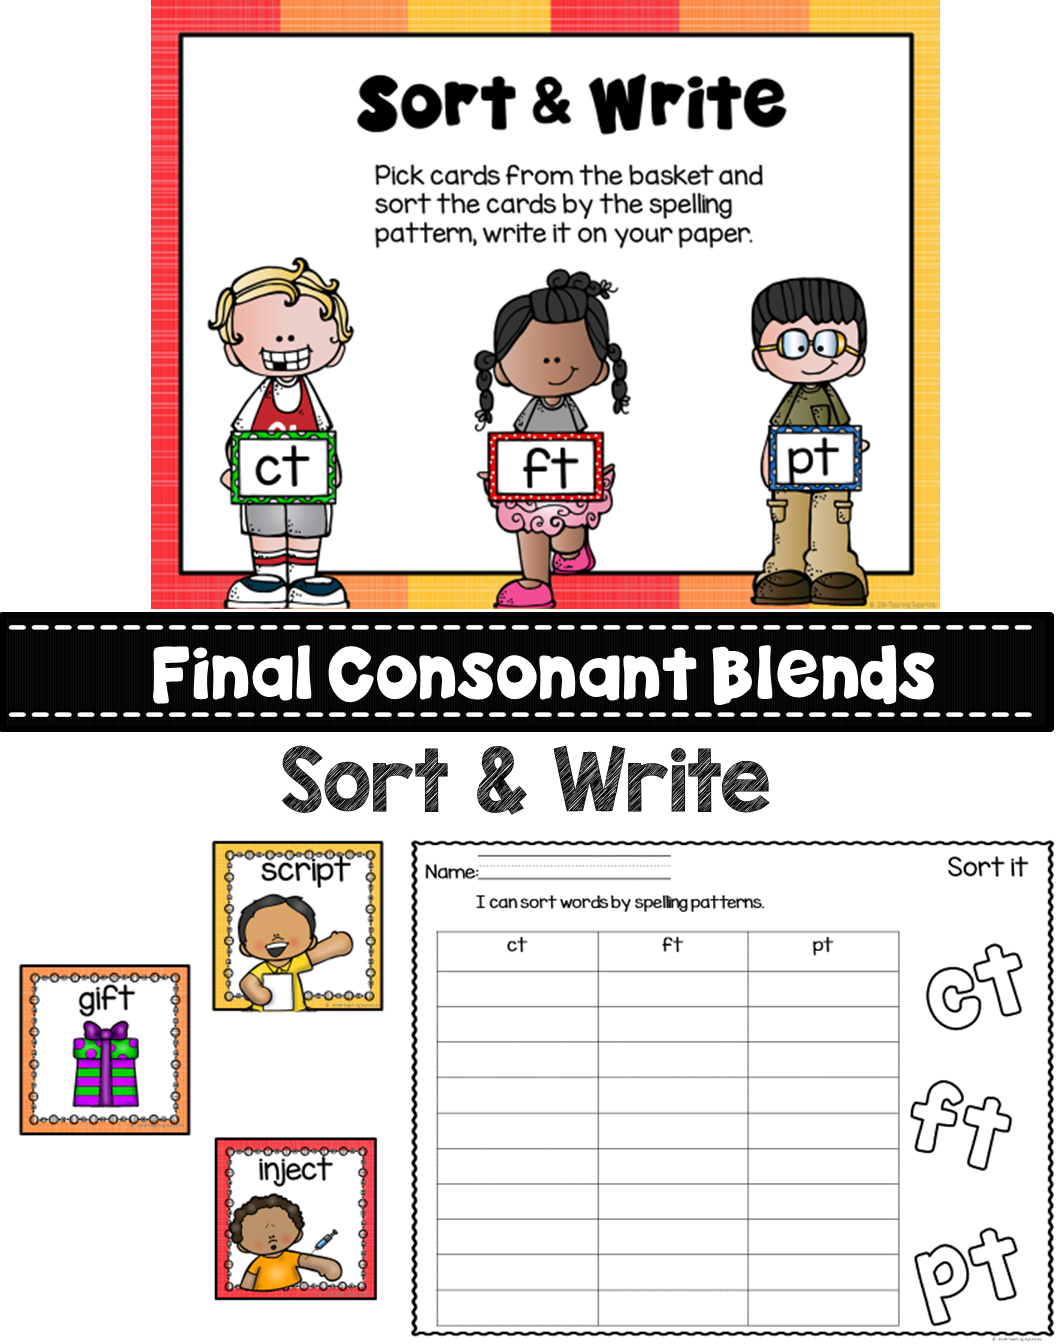 Final Consonant T Blends Sort And Write Activity